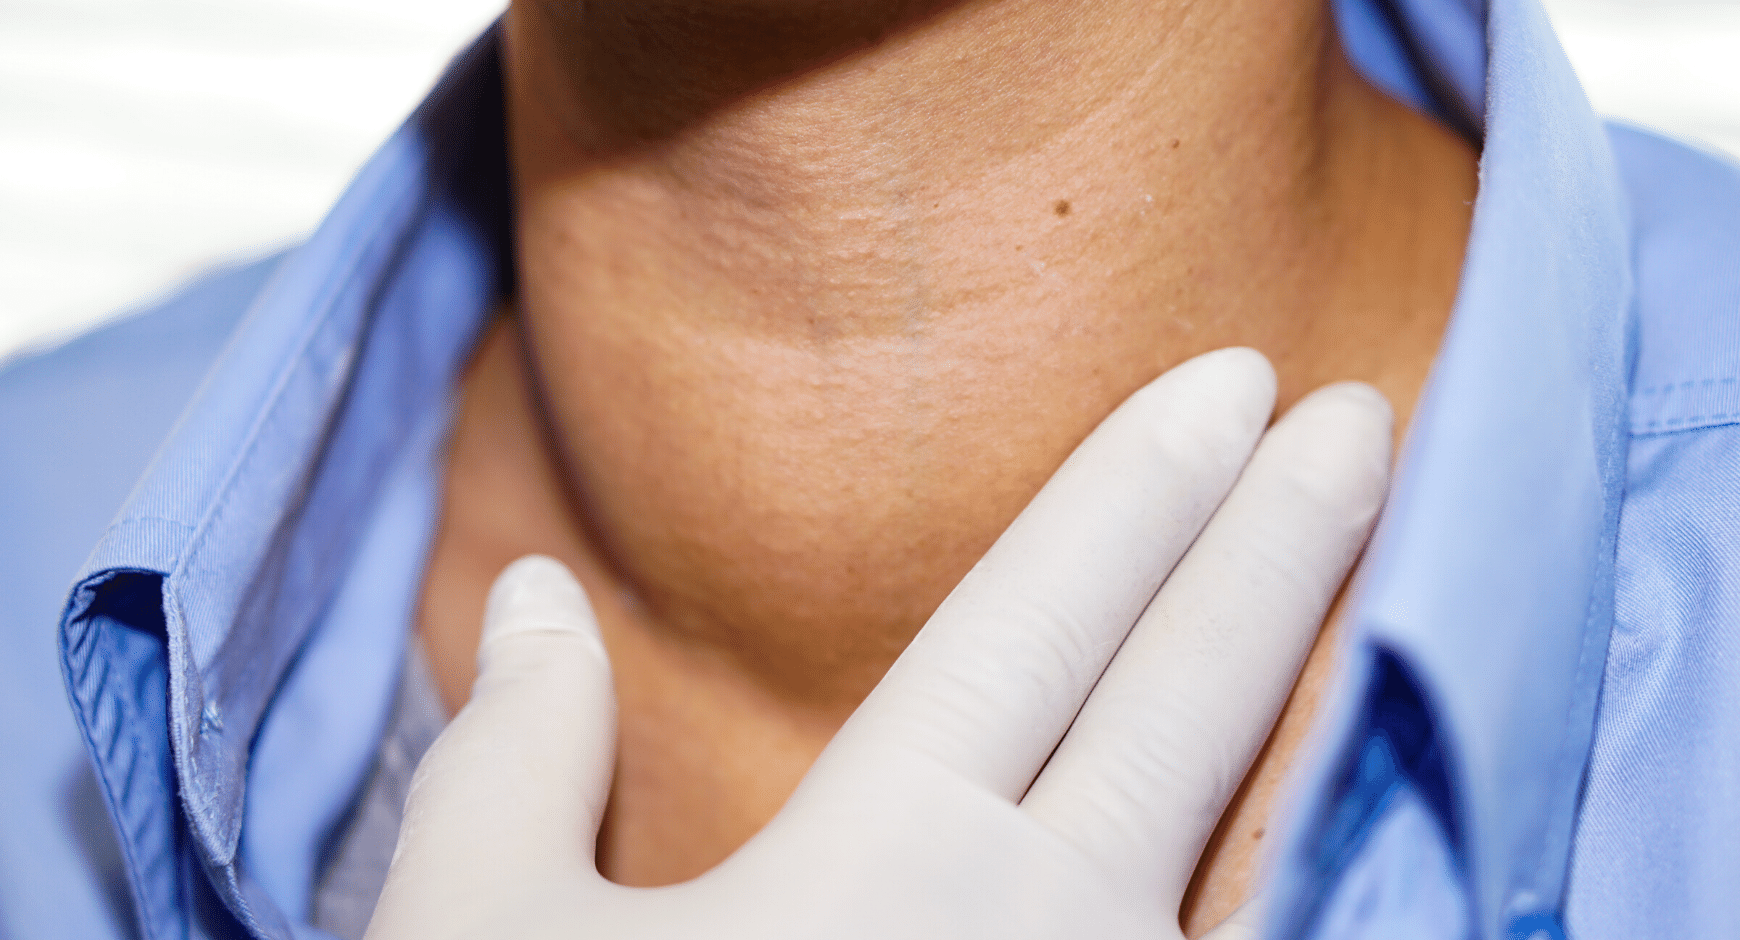 Know about thyroid functioning, tests, and treatments